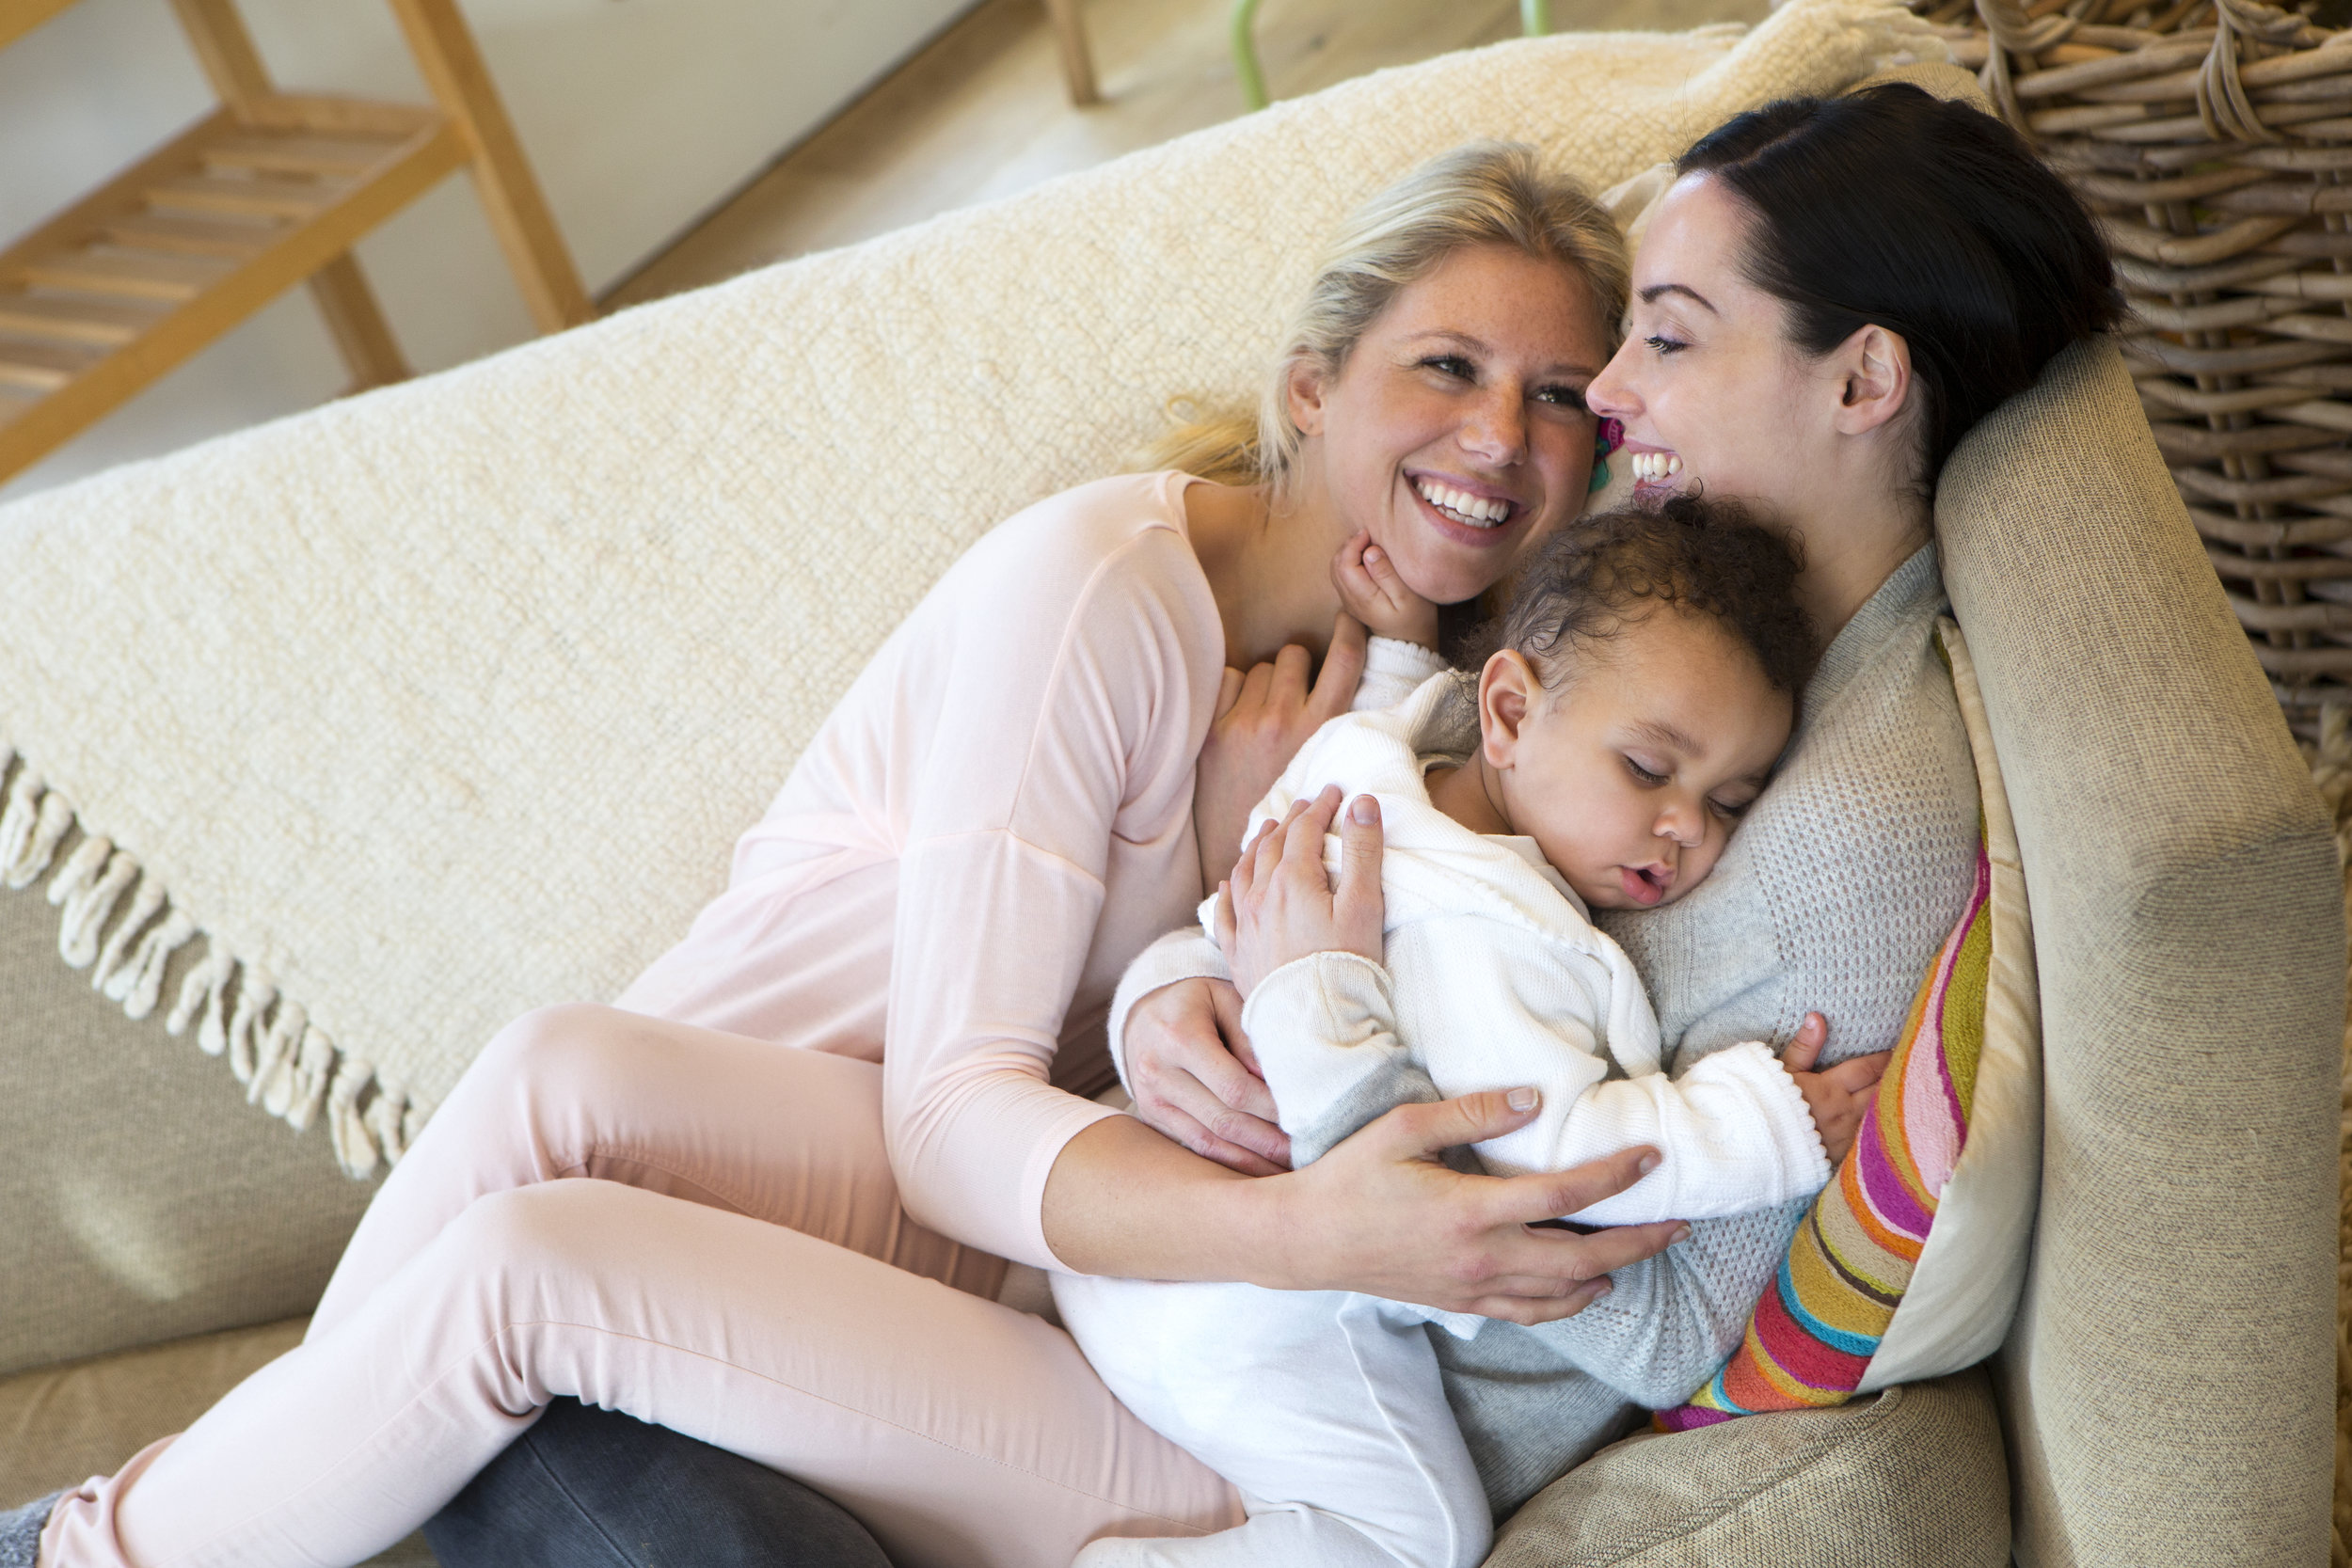 Same_sex_female_couple_cuddling_on_the_sofa_with_their_sleeping_son.jpeg